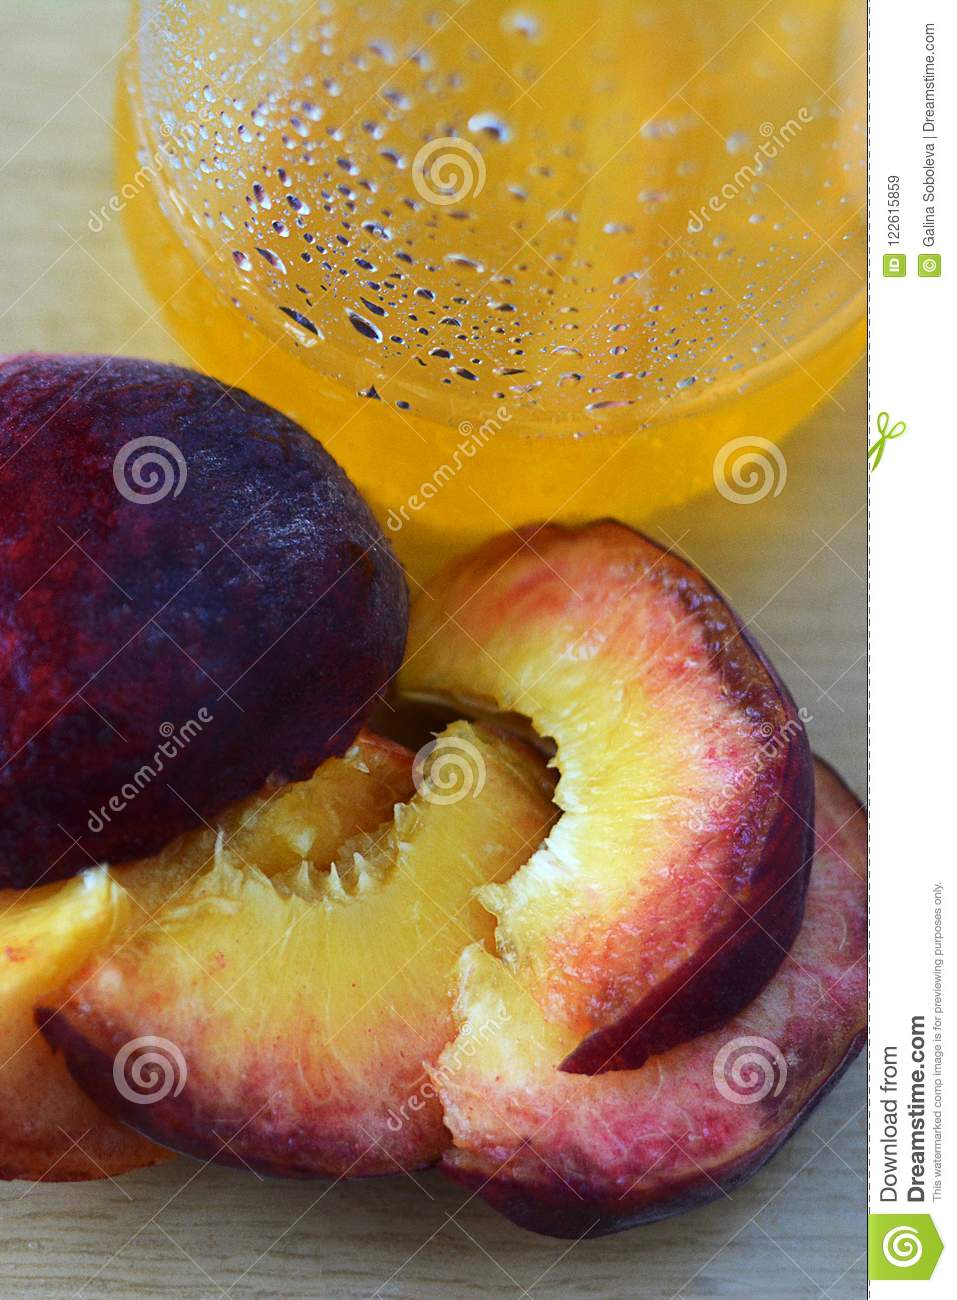 Juicy peaches of peach and a glass with peach juice.